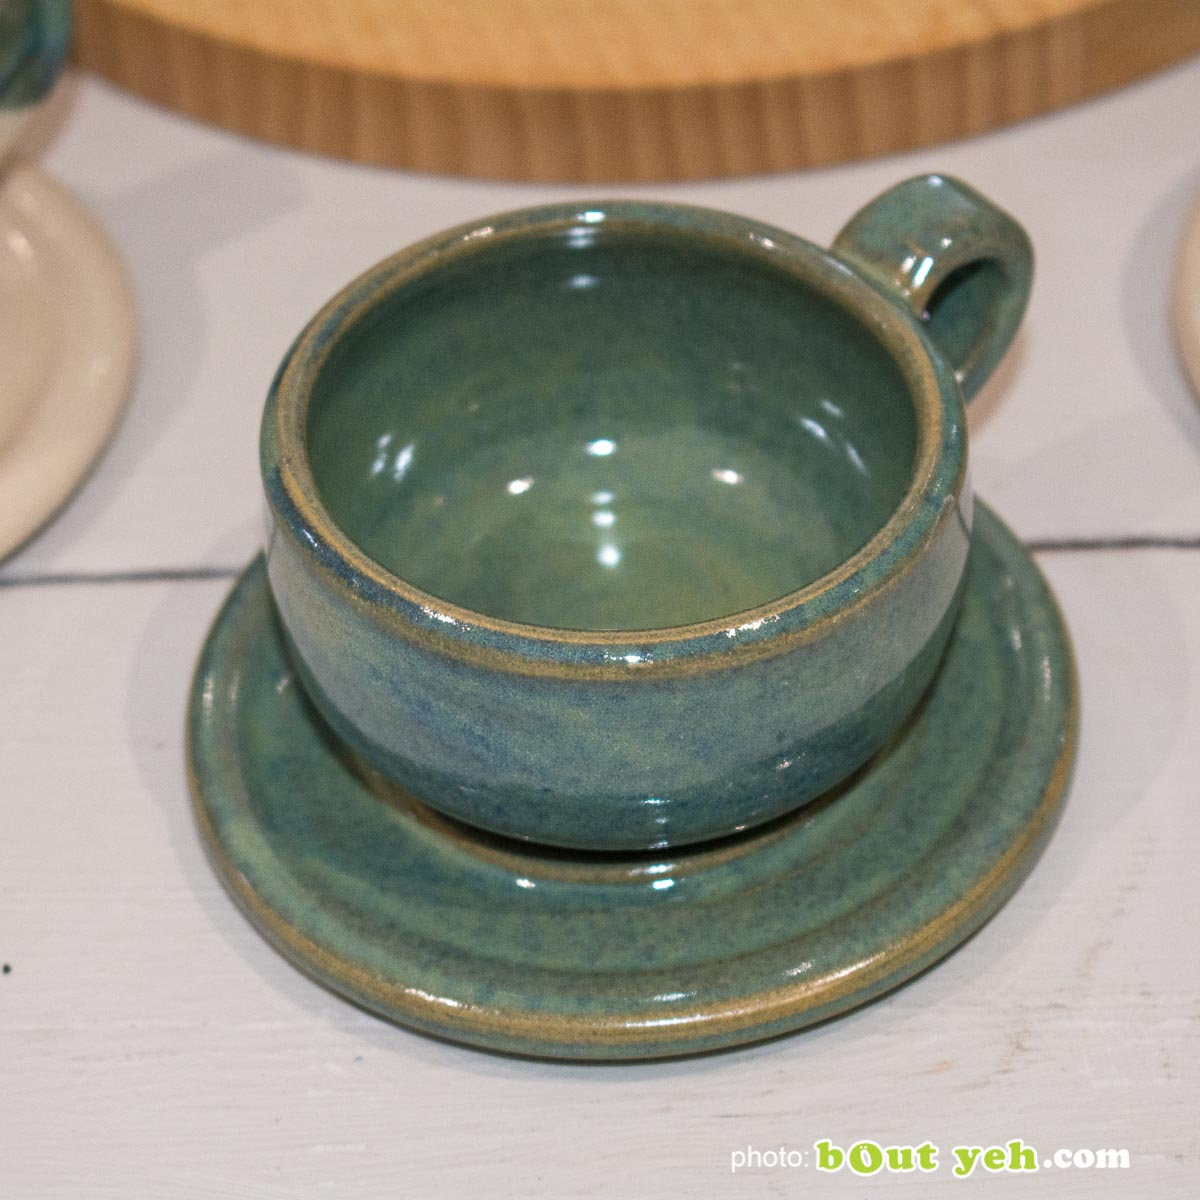 Hand made espresso set of 2 cups and saucers in green and blue - photo 1432.